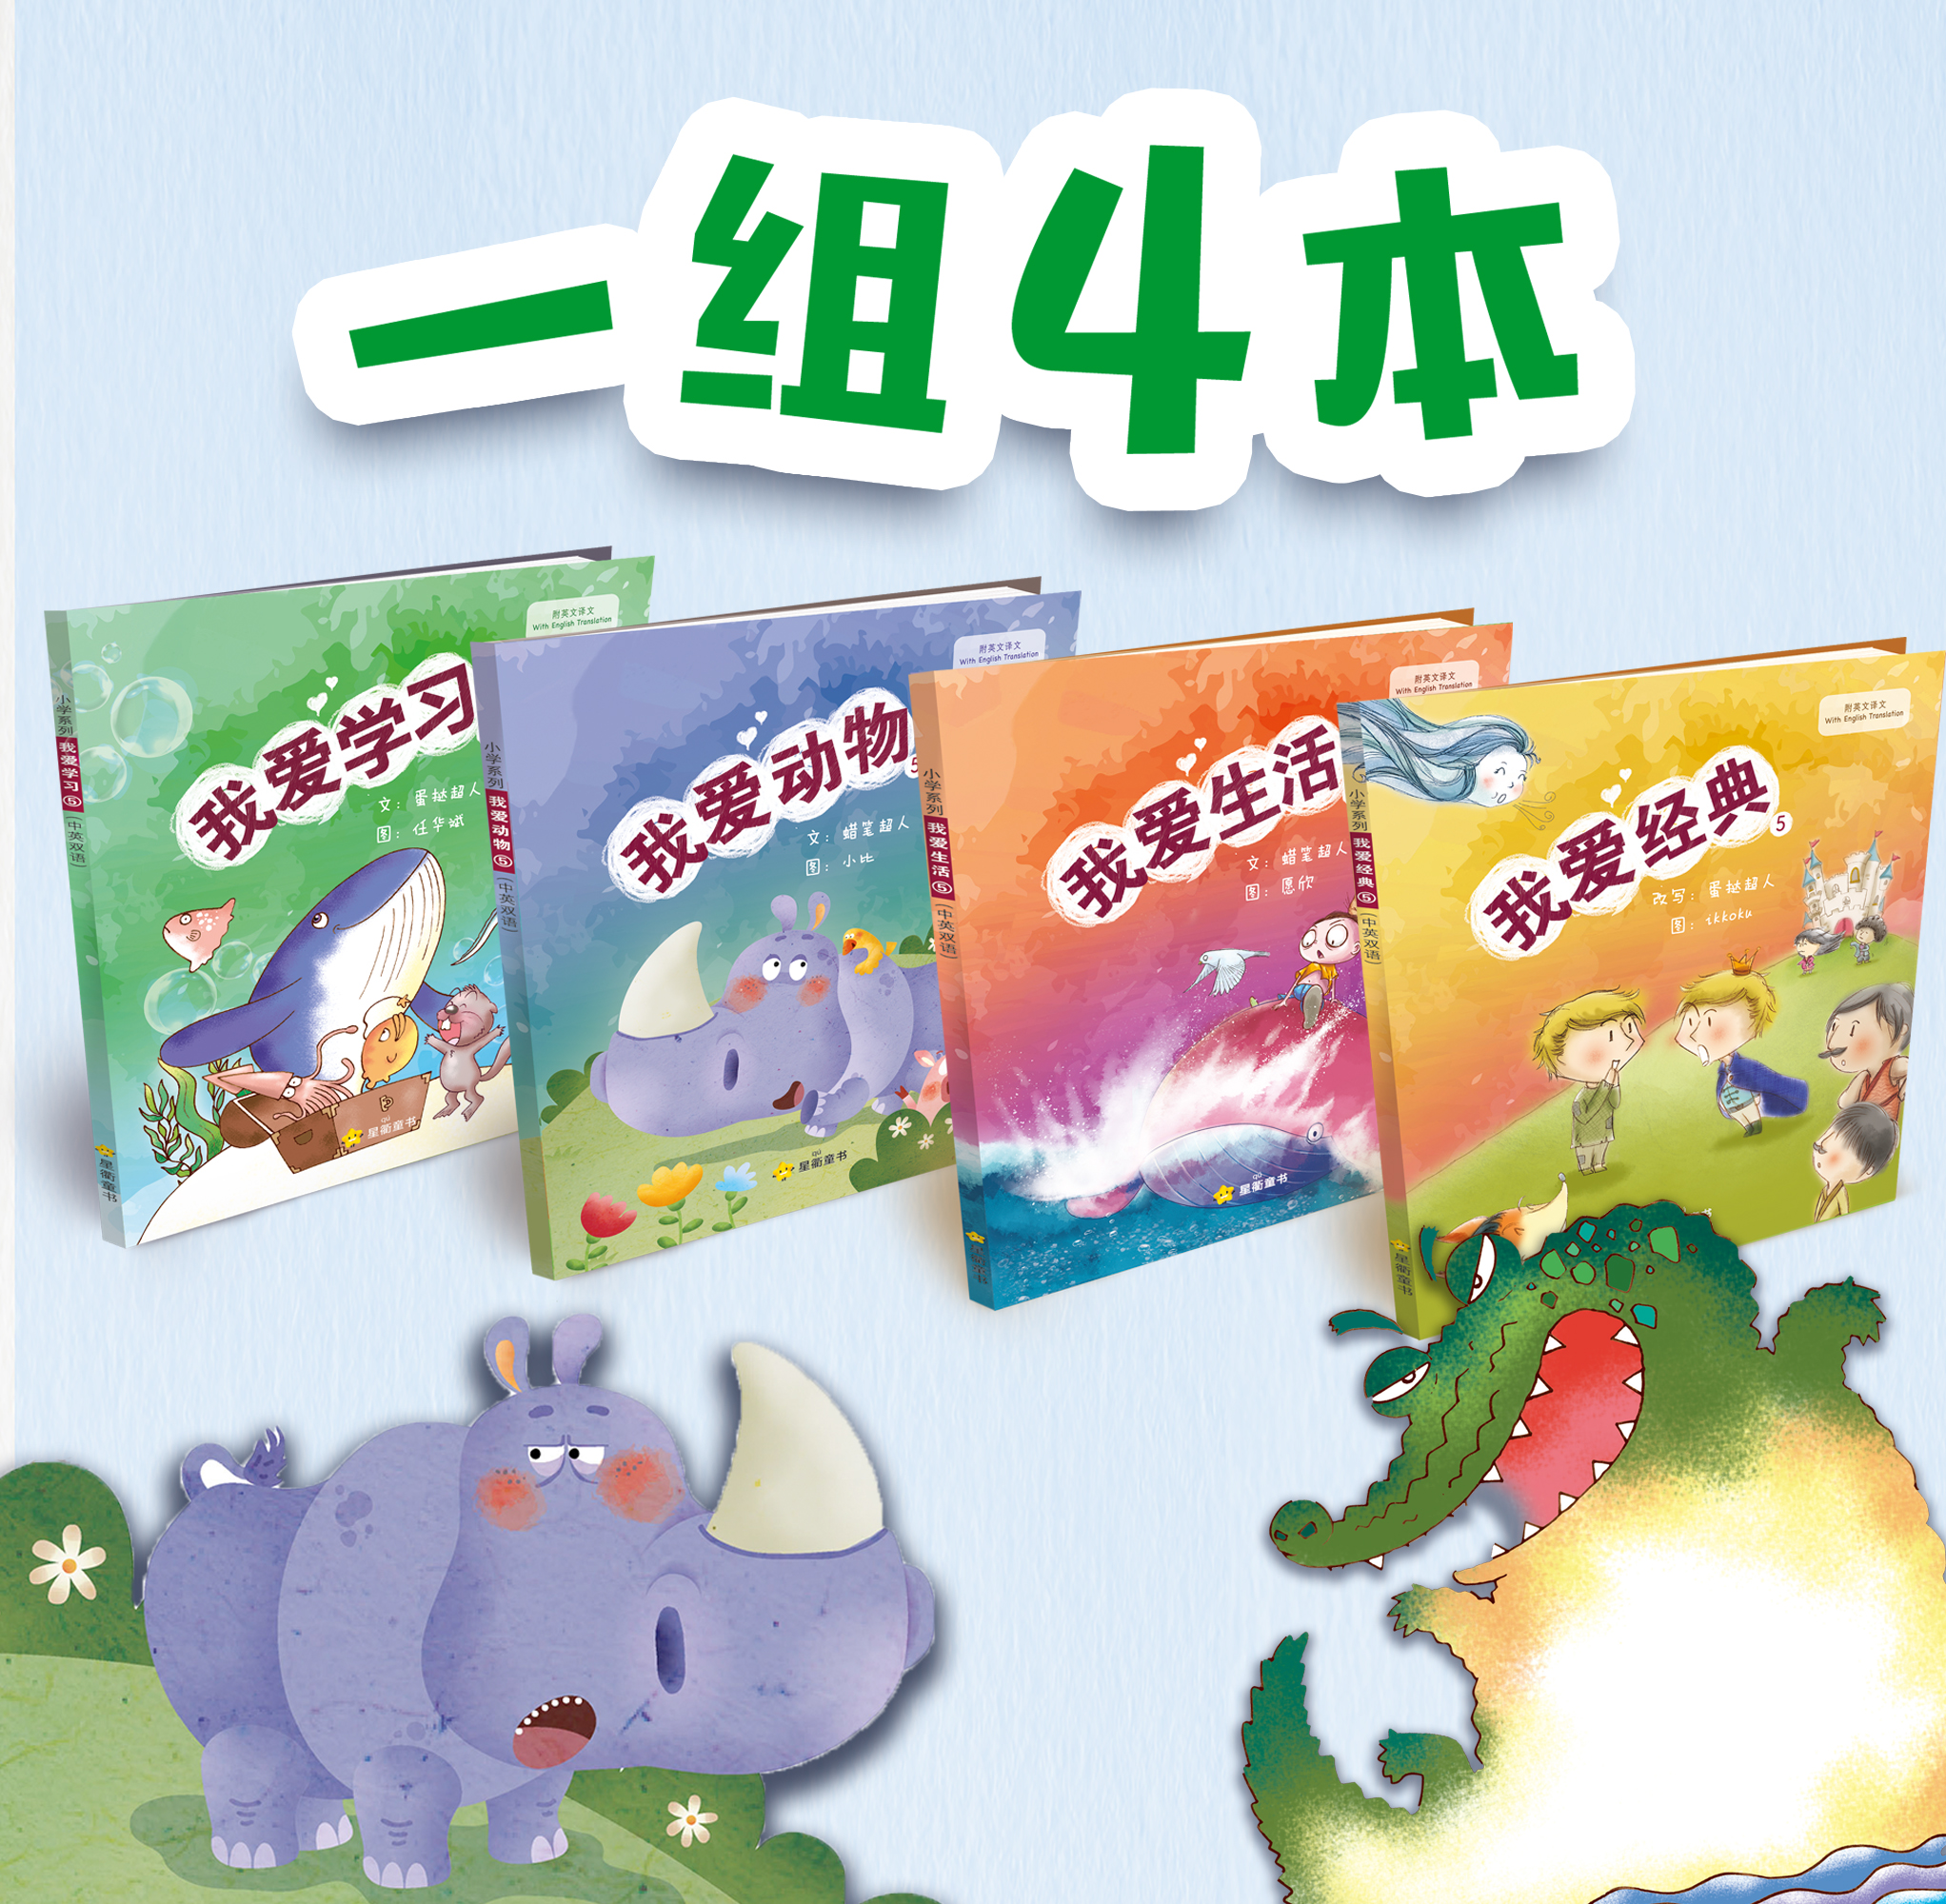 (Bundle of 4) / Primary Level Chinese Storybooks / I Love Reading Collection 5 / 《我爱阅读》系列 5